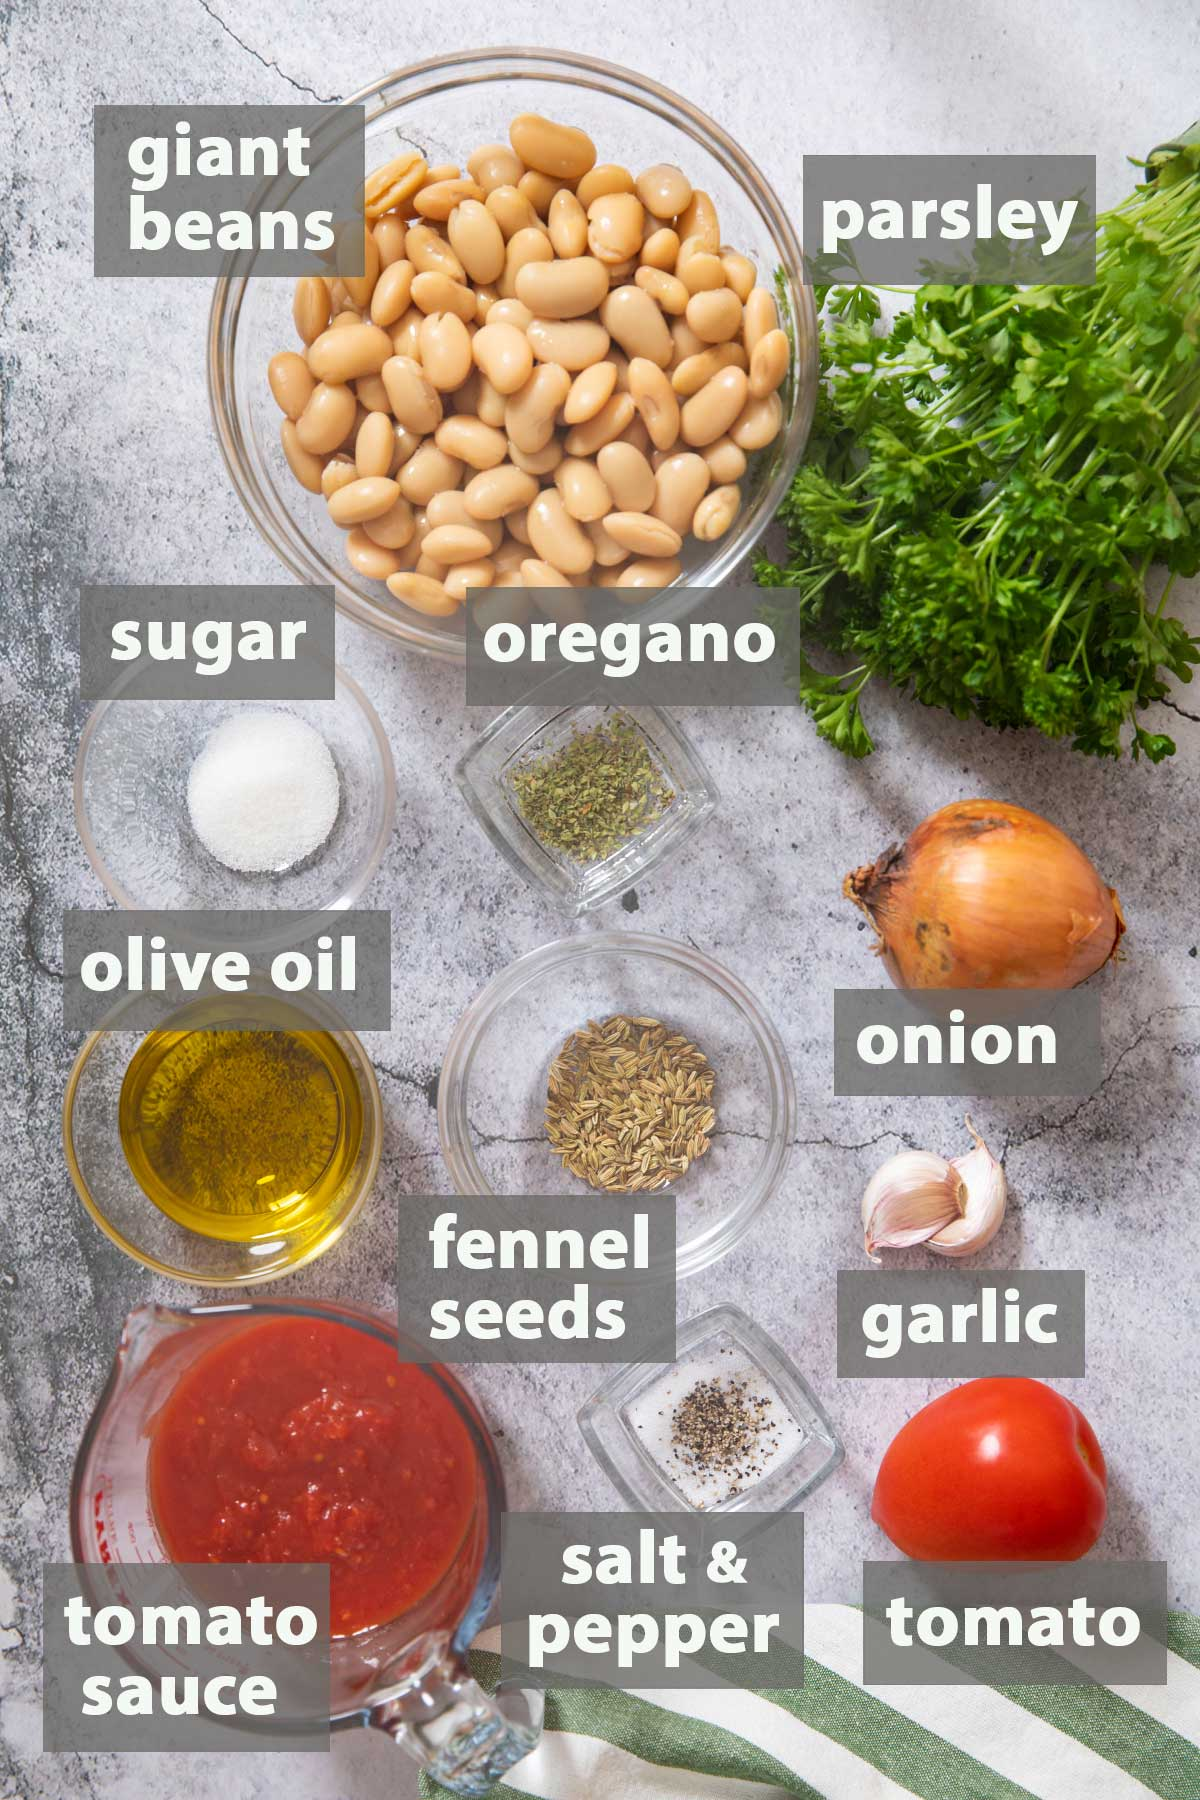 An image showing all the ingredients that you need to have to prepare Baked Giant Beans at home.